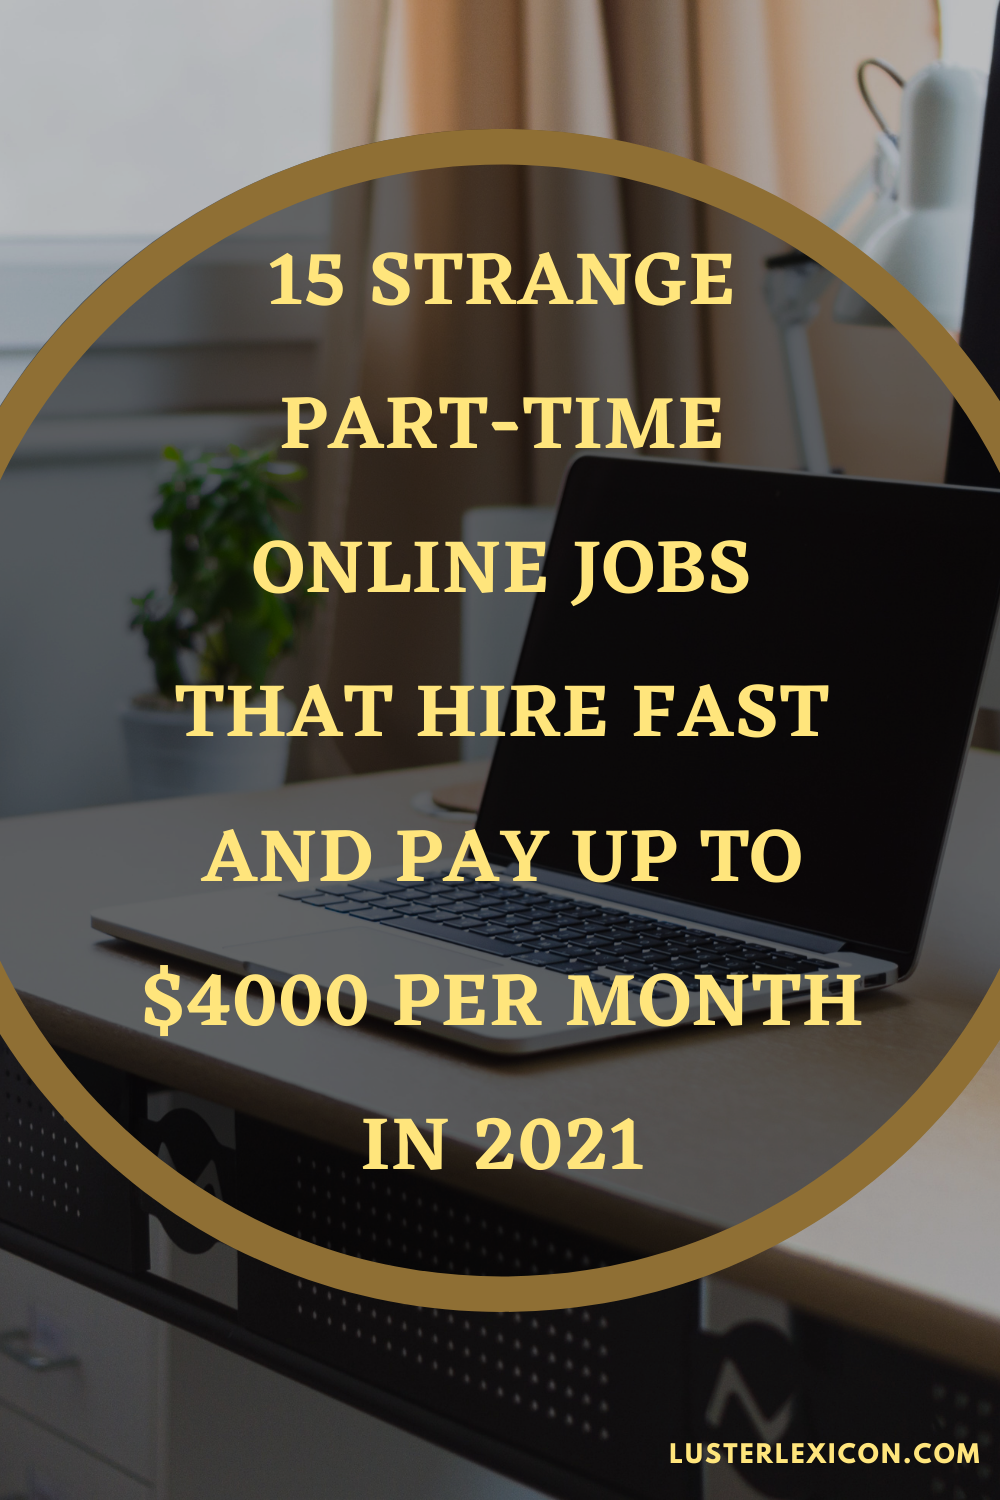 15 STRANGE PART-TIME ONLINE JOBS THAT HIRE FAST AN